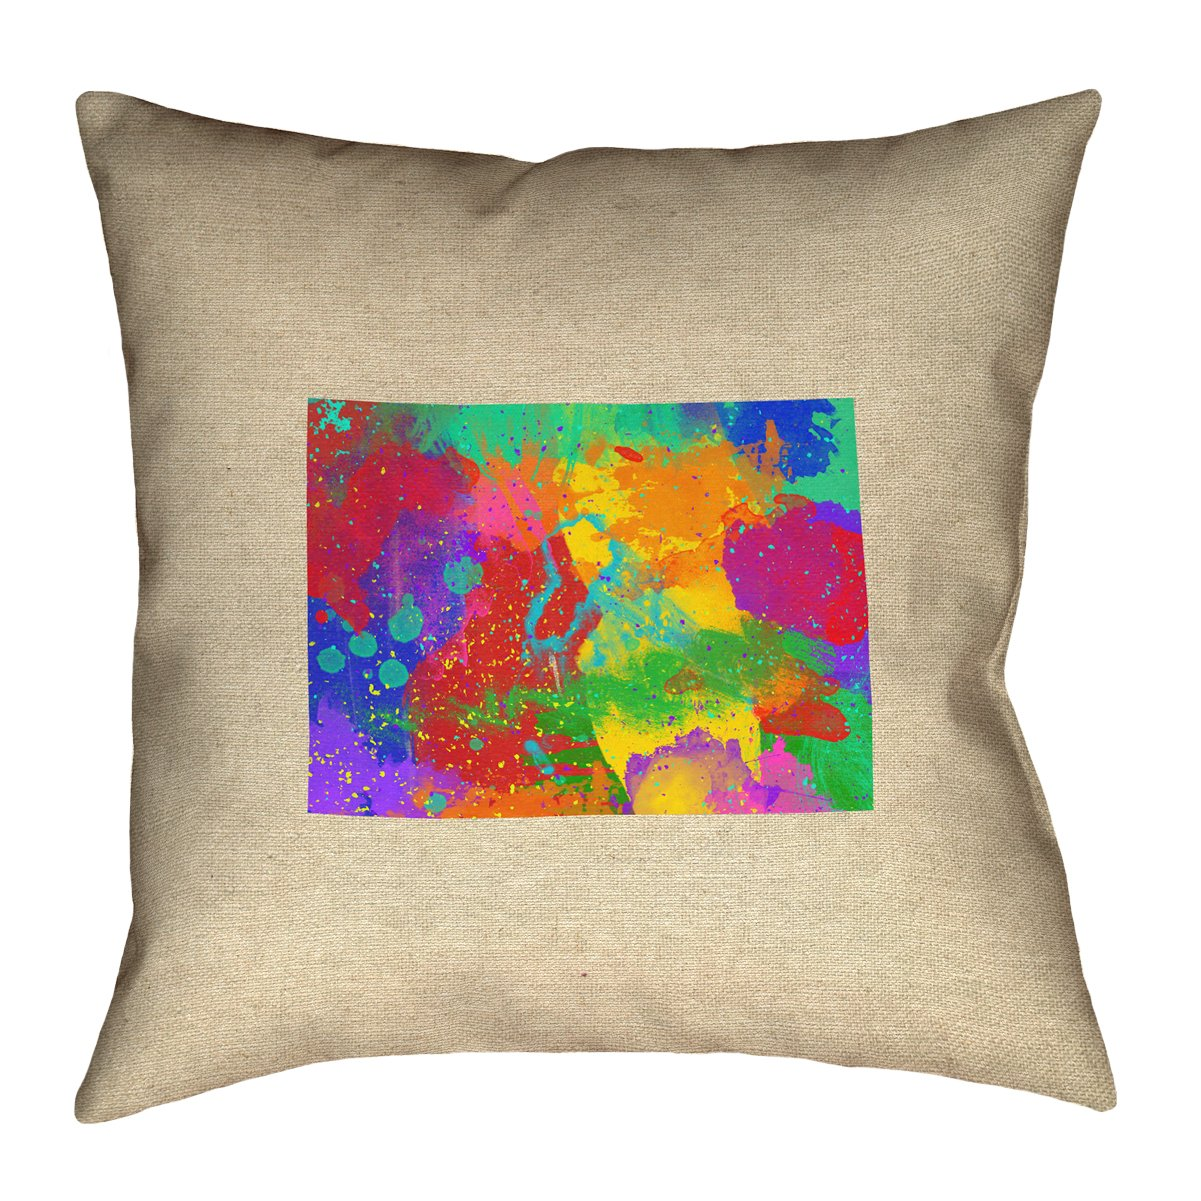 ArtVerse Katelyn Smith 26 x 26 Faux Suede Double Sided Print with Concealed Zipper /& Insert Colorado Watercolor Pillow